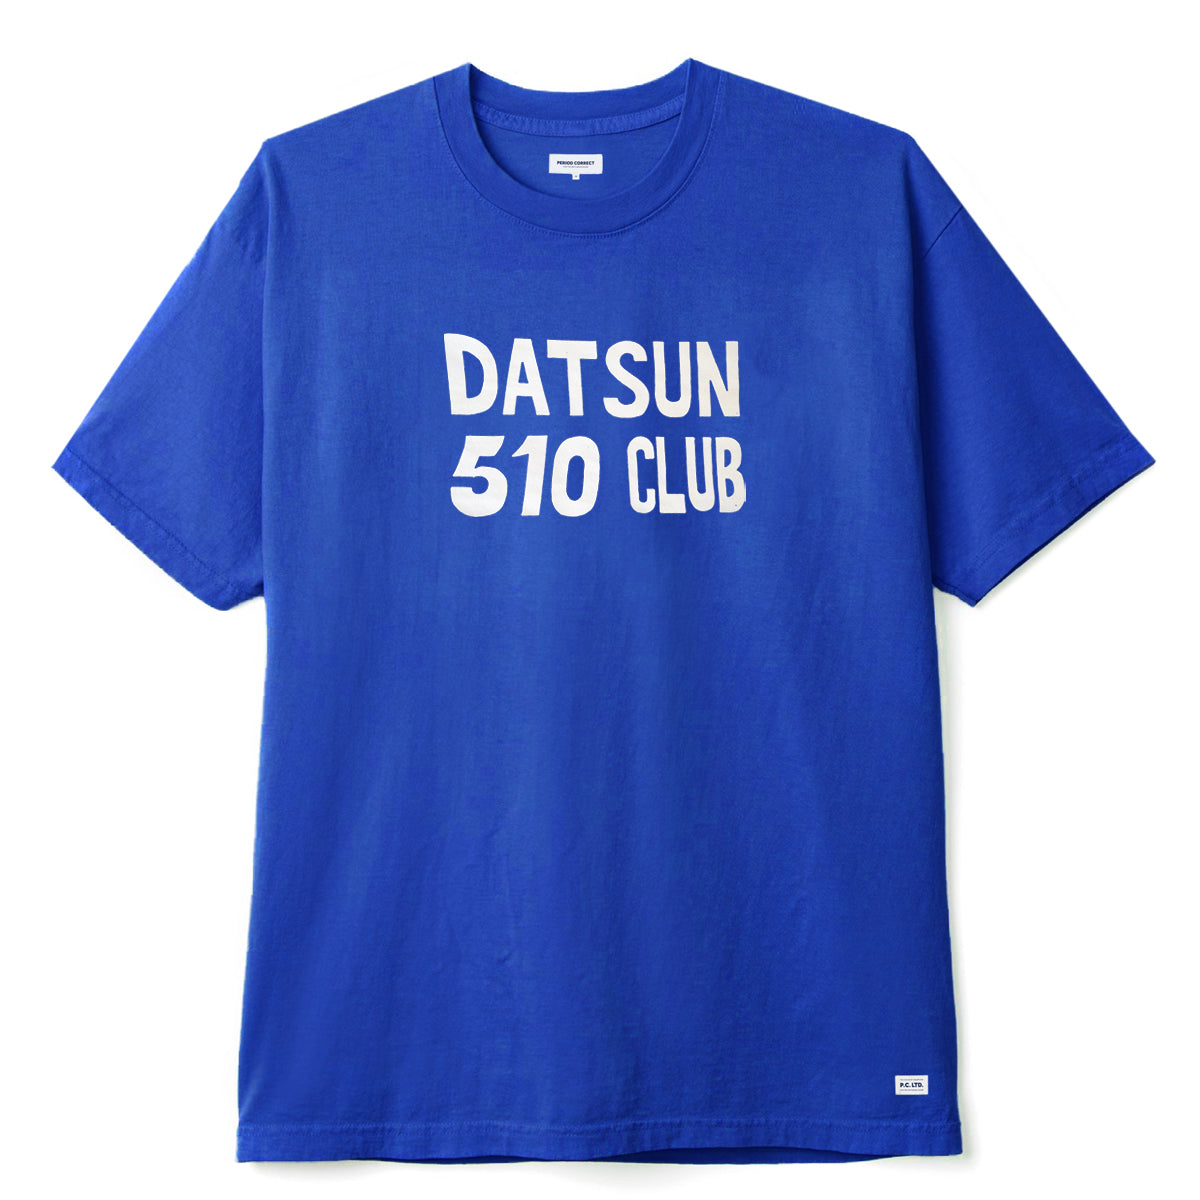 510 CLUB T-SHIRT ROYAL